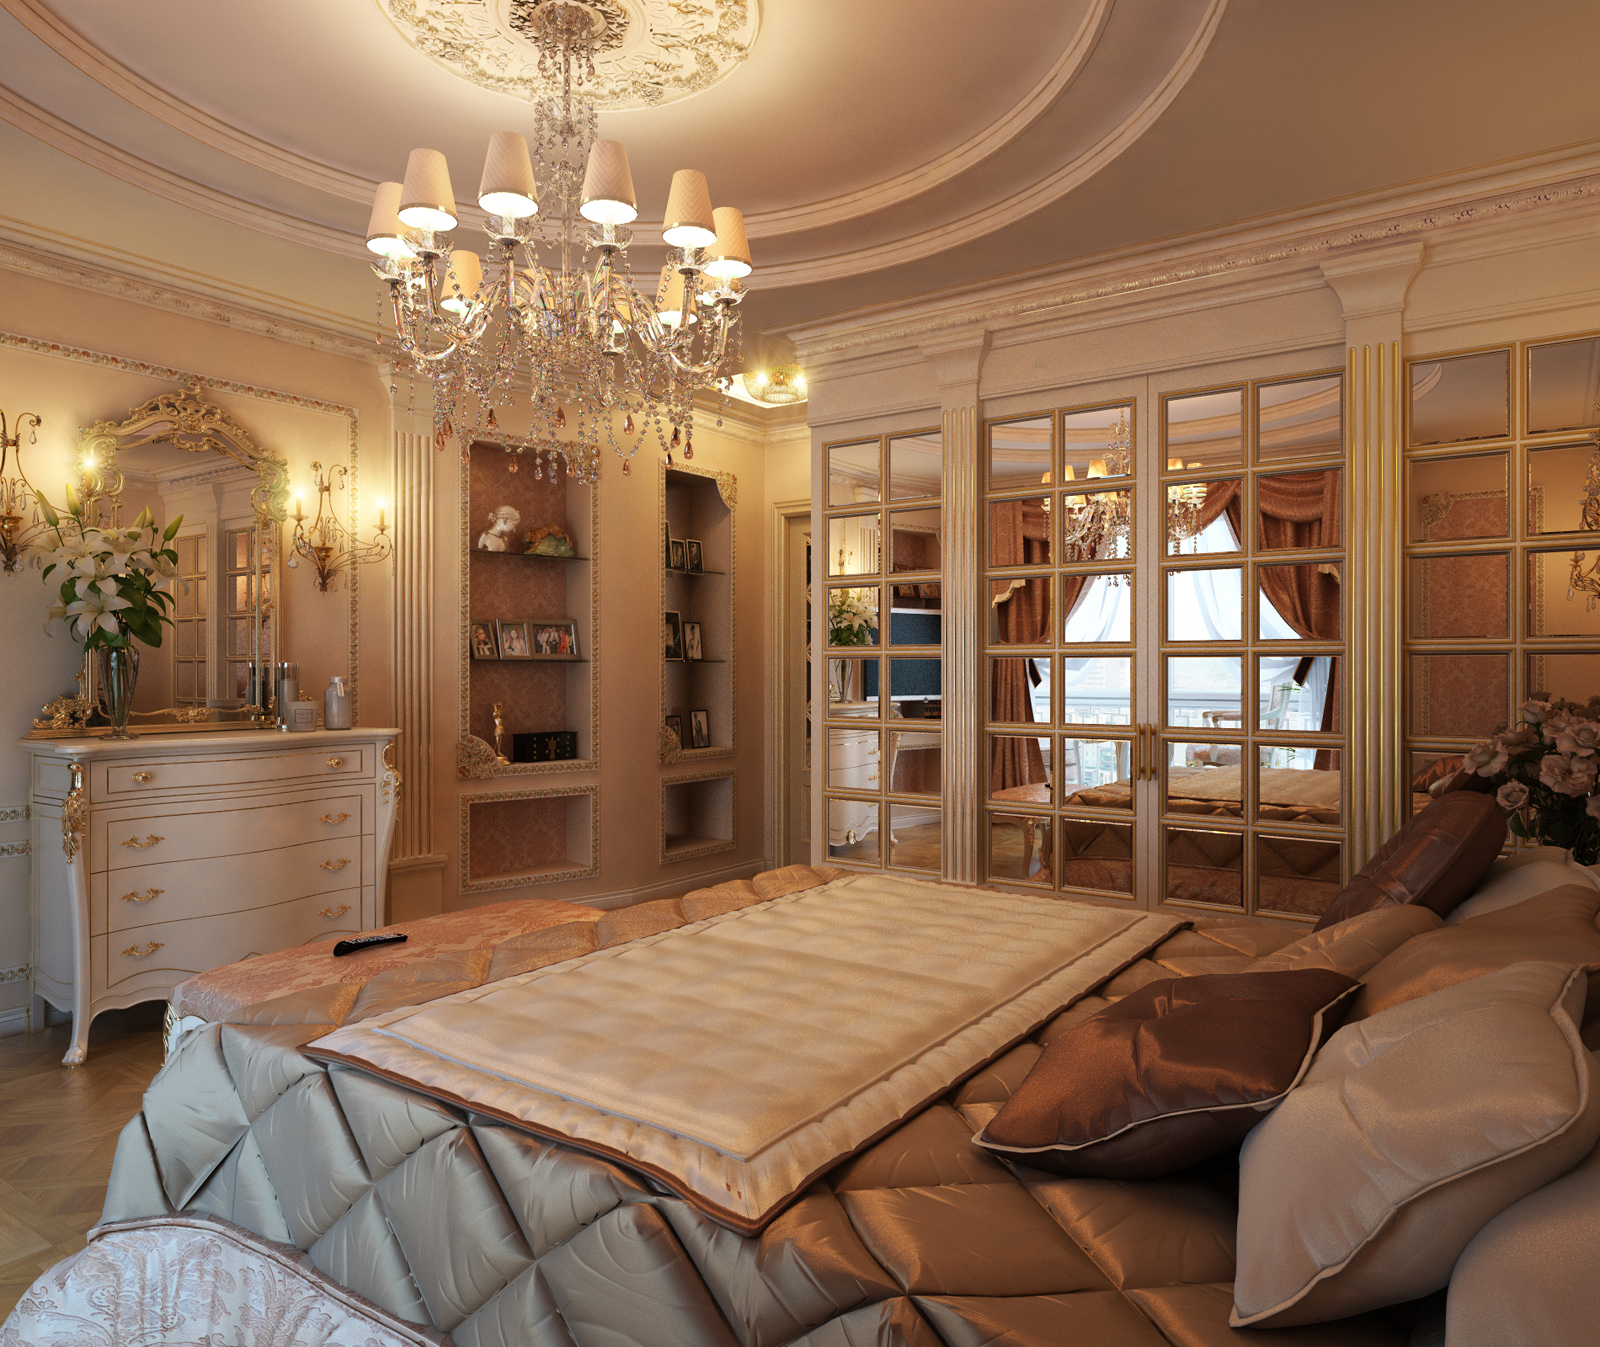 Royal home designs home designing - Bedrooms designs ...